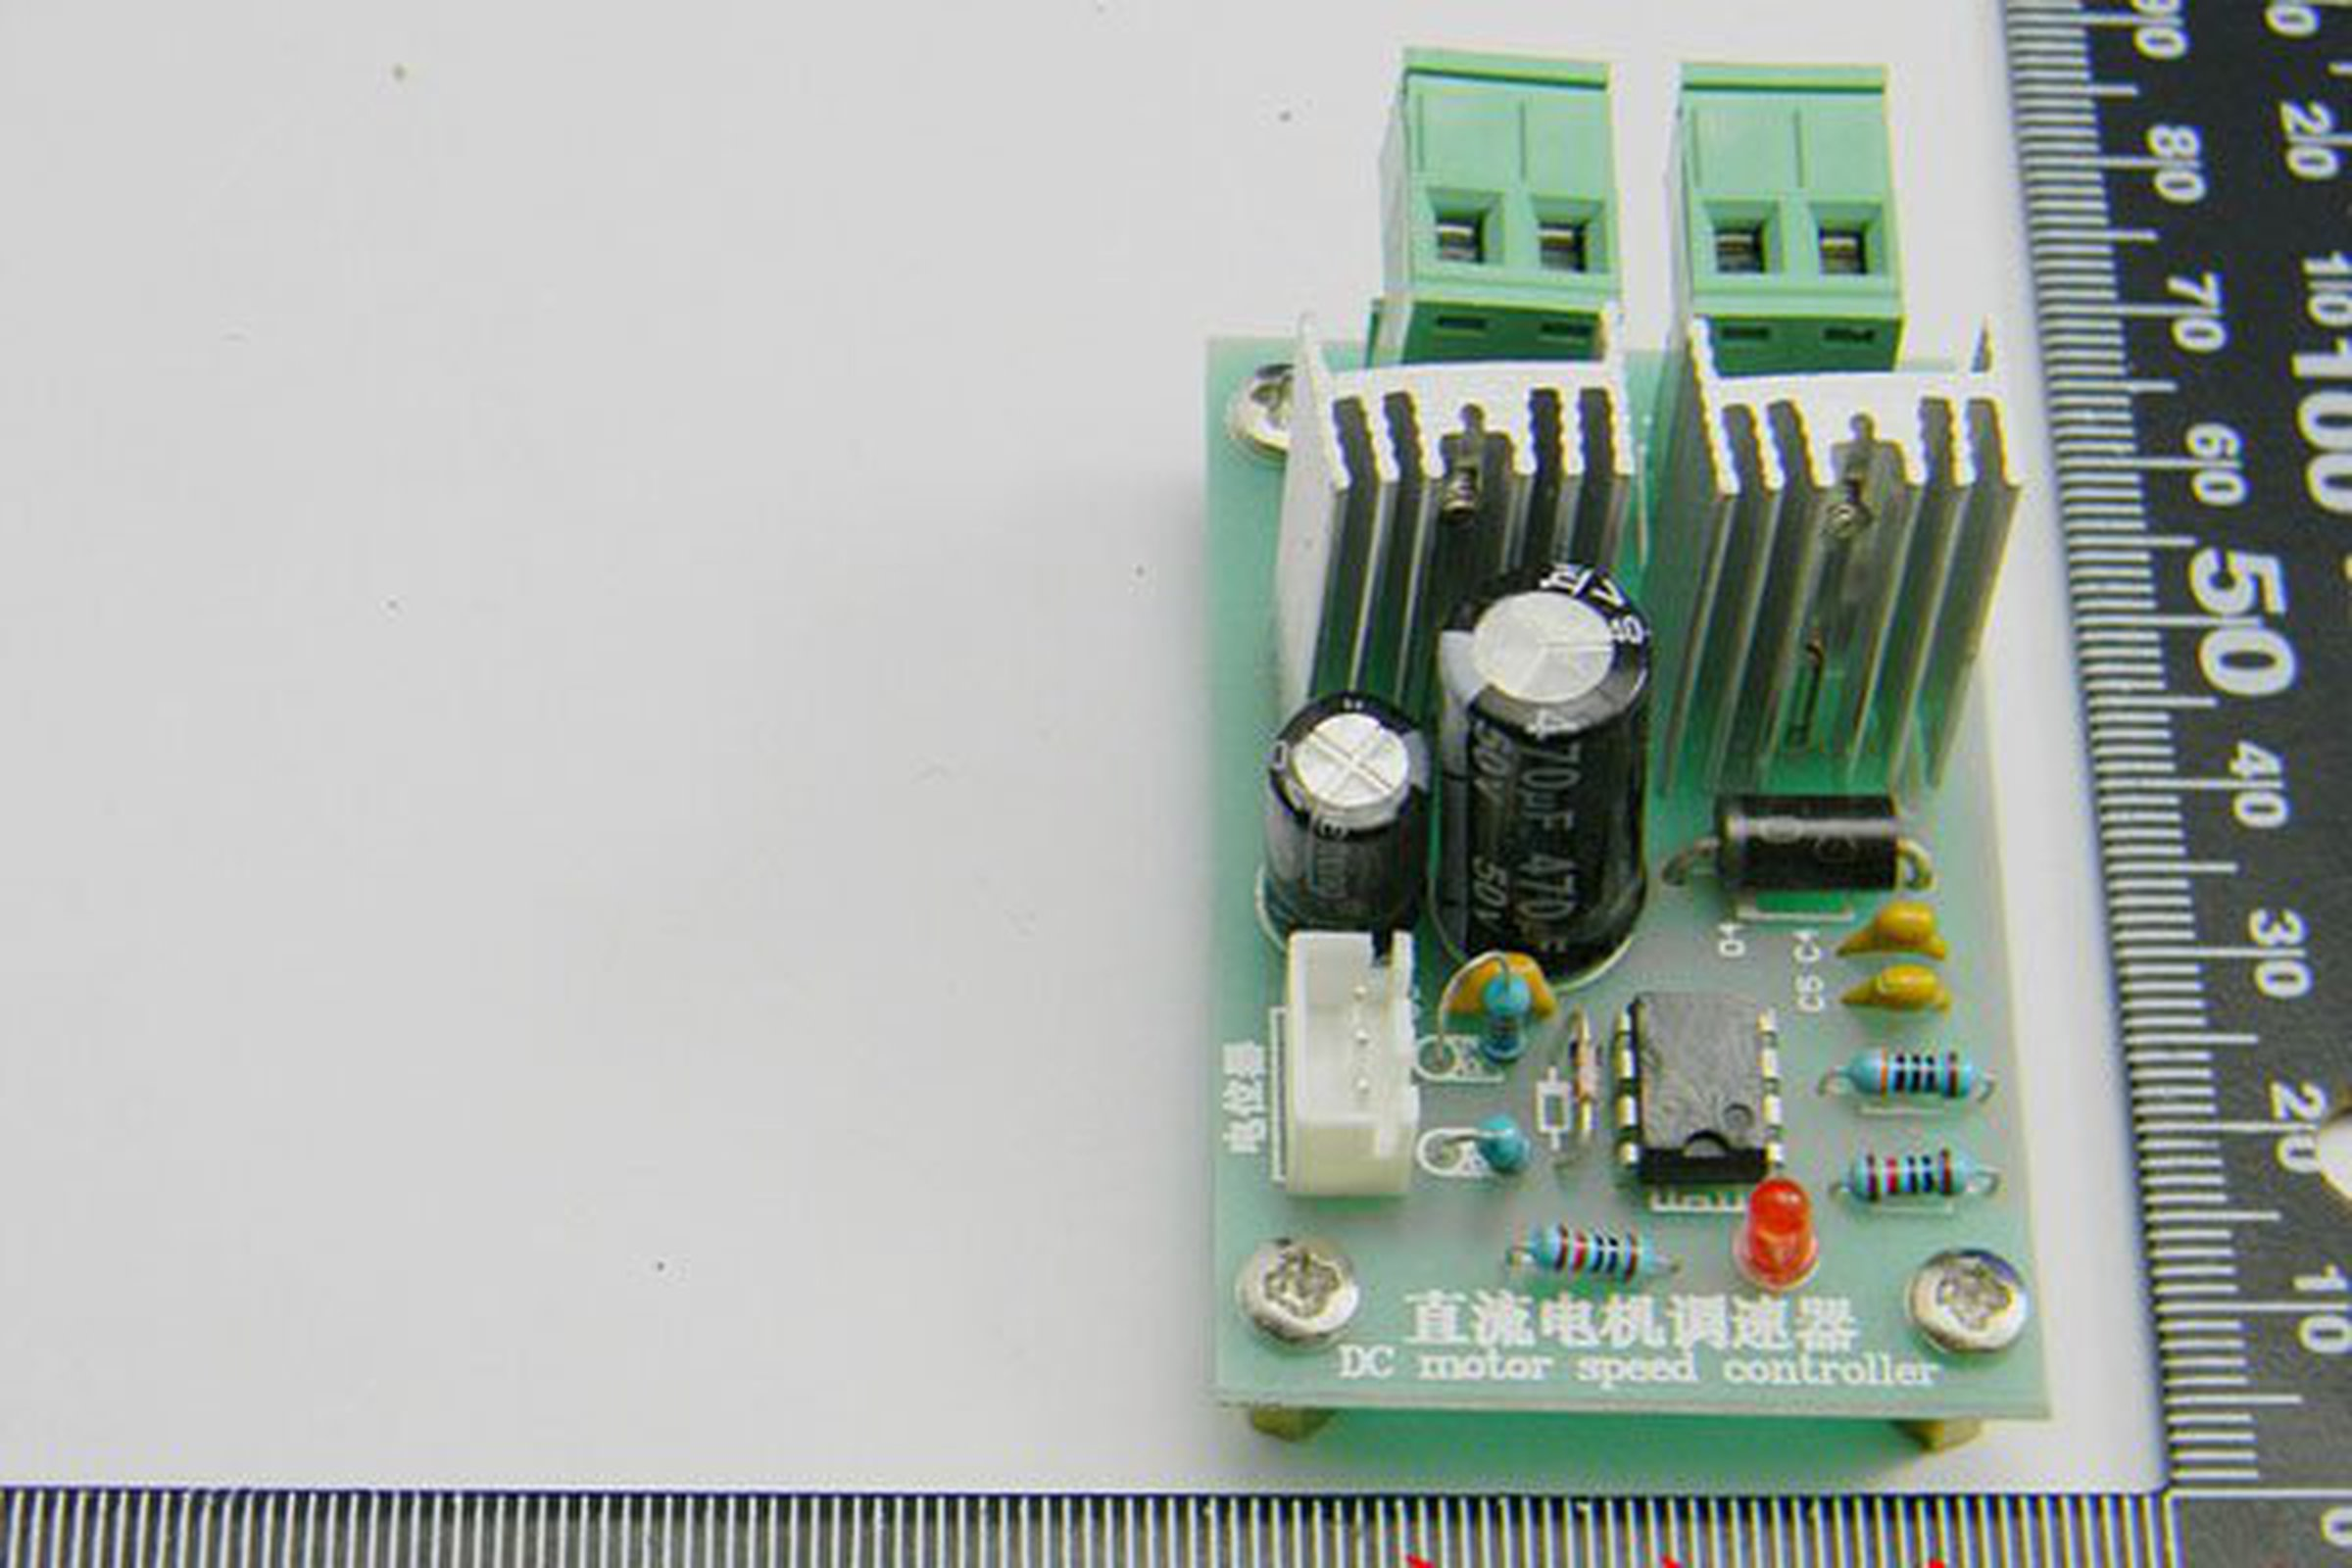 General Pulse Width Modulator 12 24 36v From Exlene On Tindie Is A Circuit To Control Motor Speed Uses Modulation Pwm 5